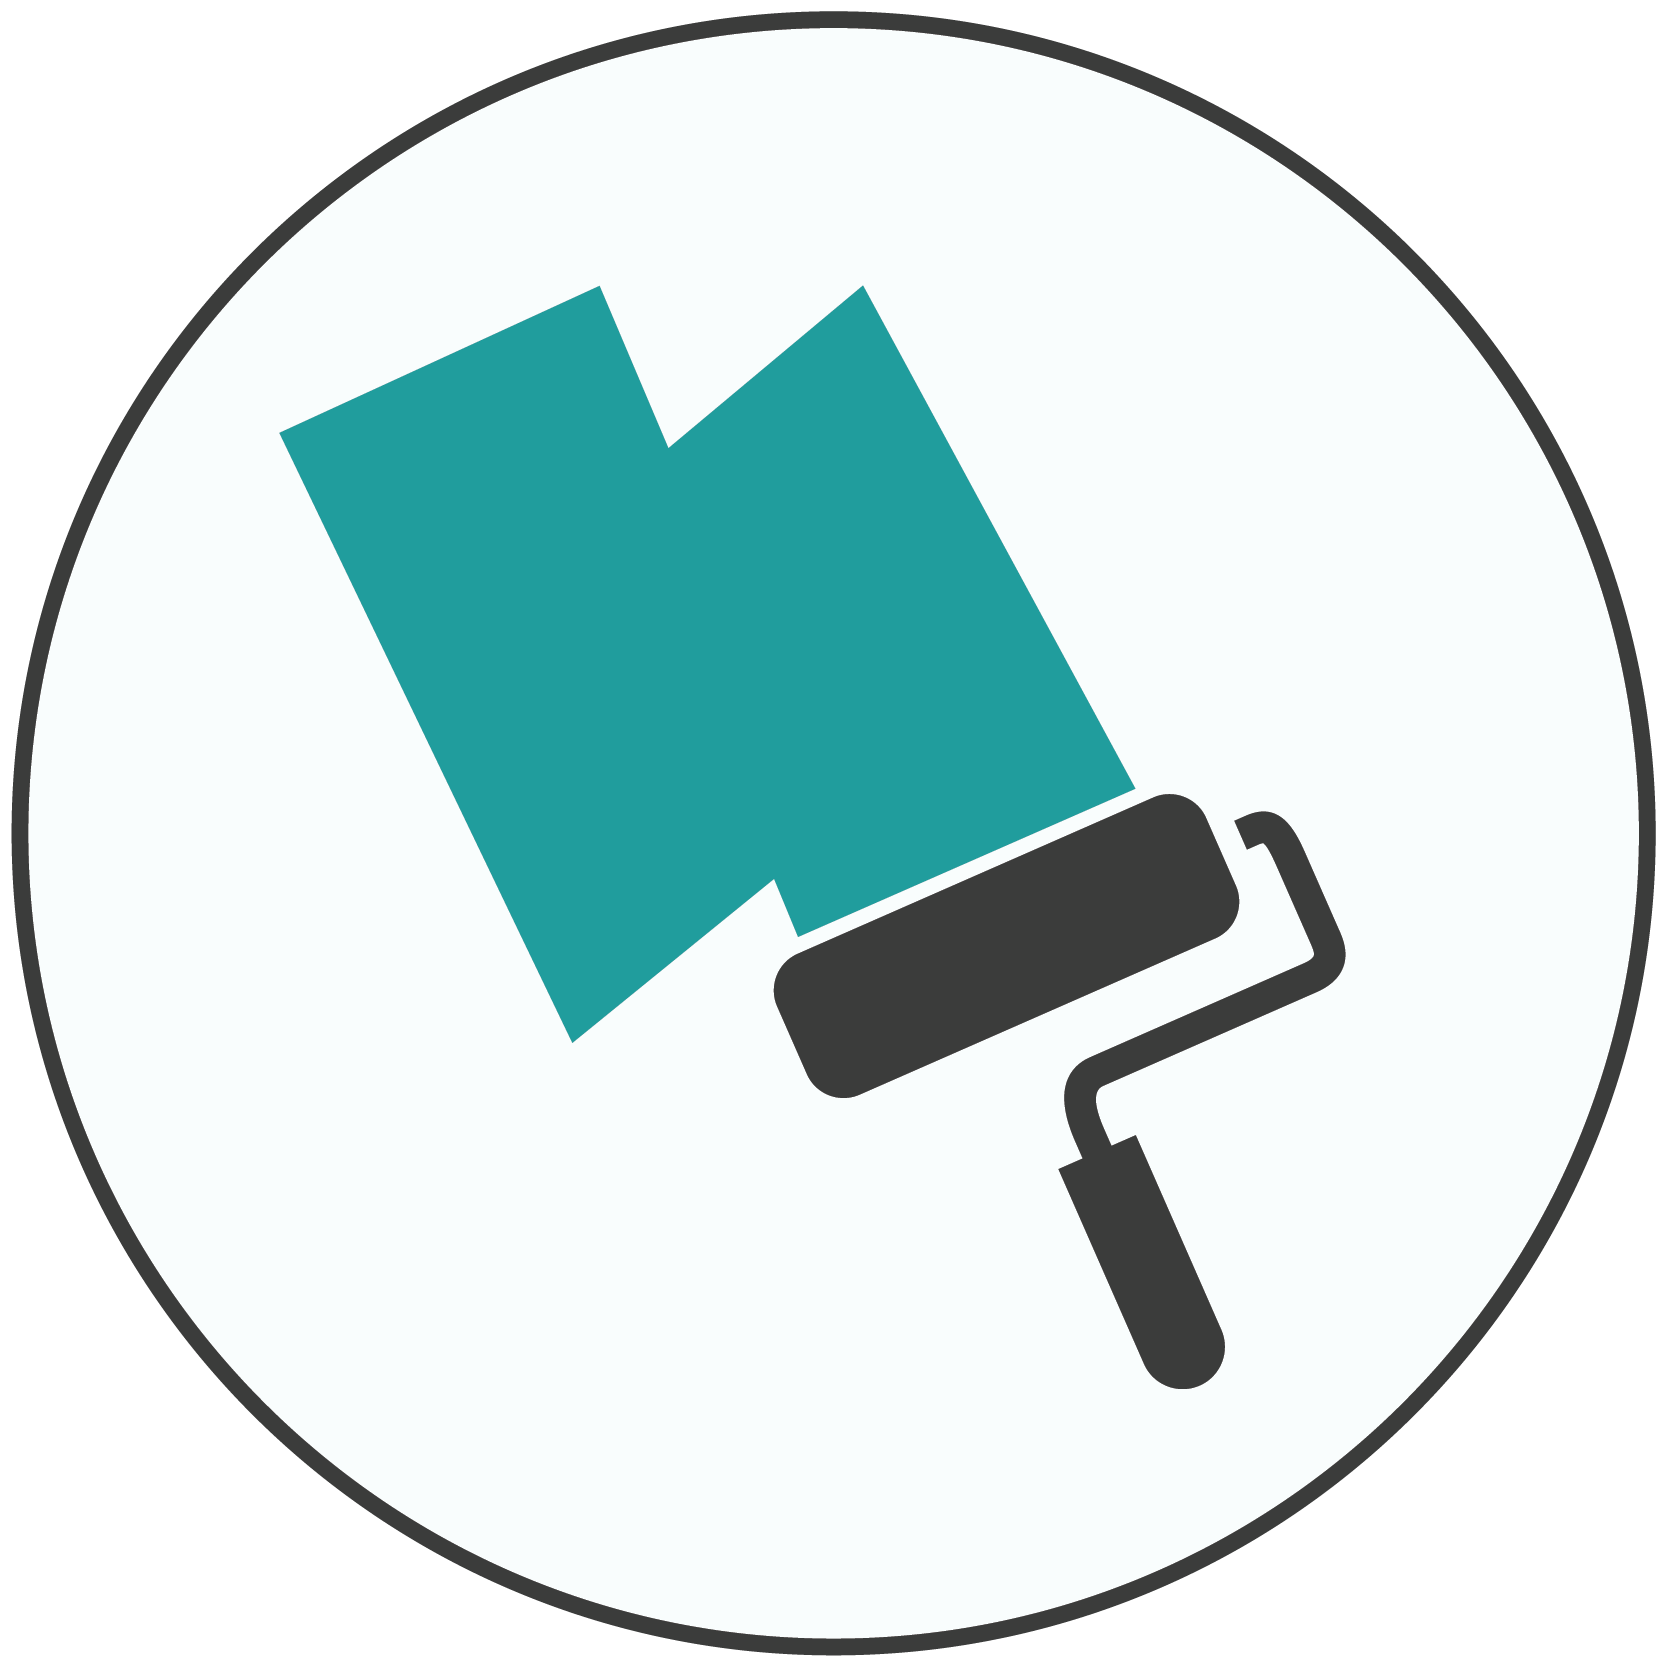 Teal and gray icon of a paint roller and primer